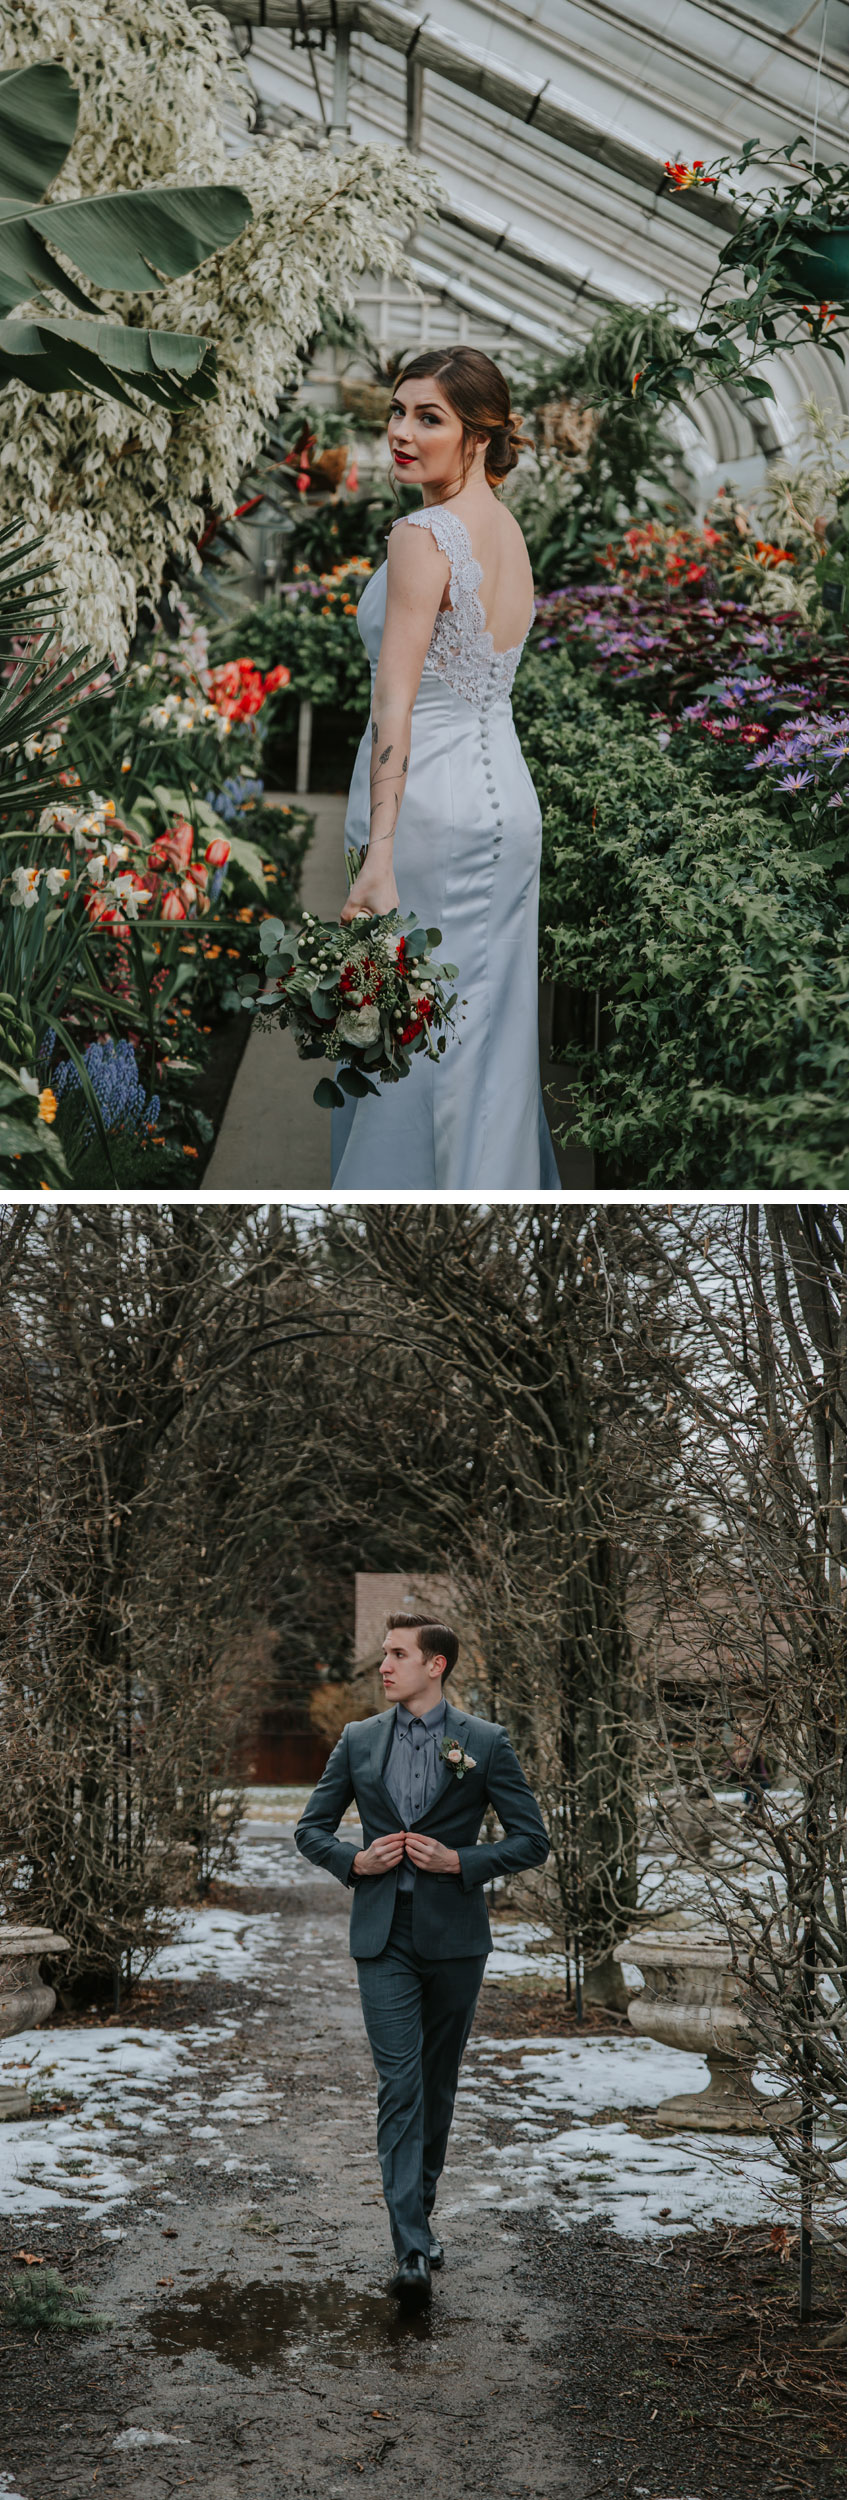 Bride and Groom portraits in a frosted garden